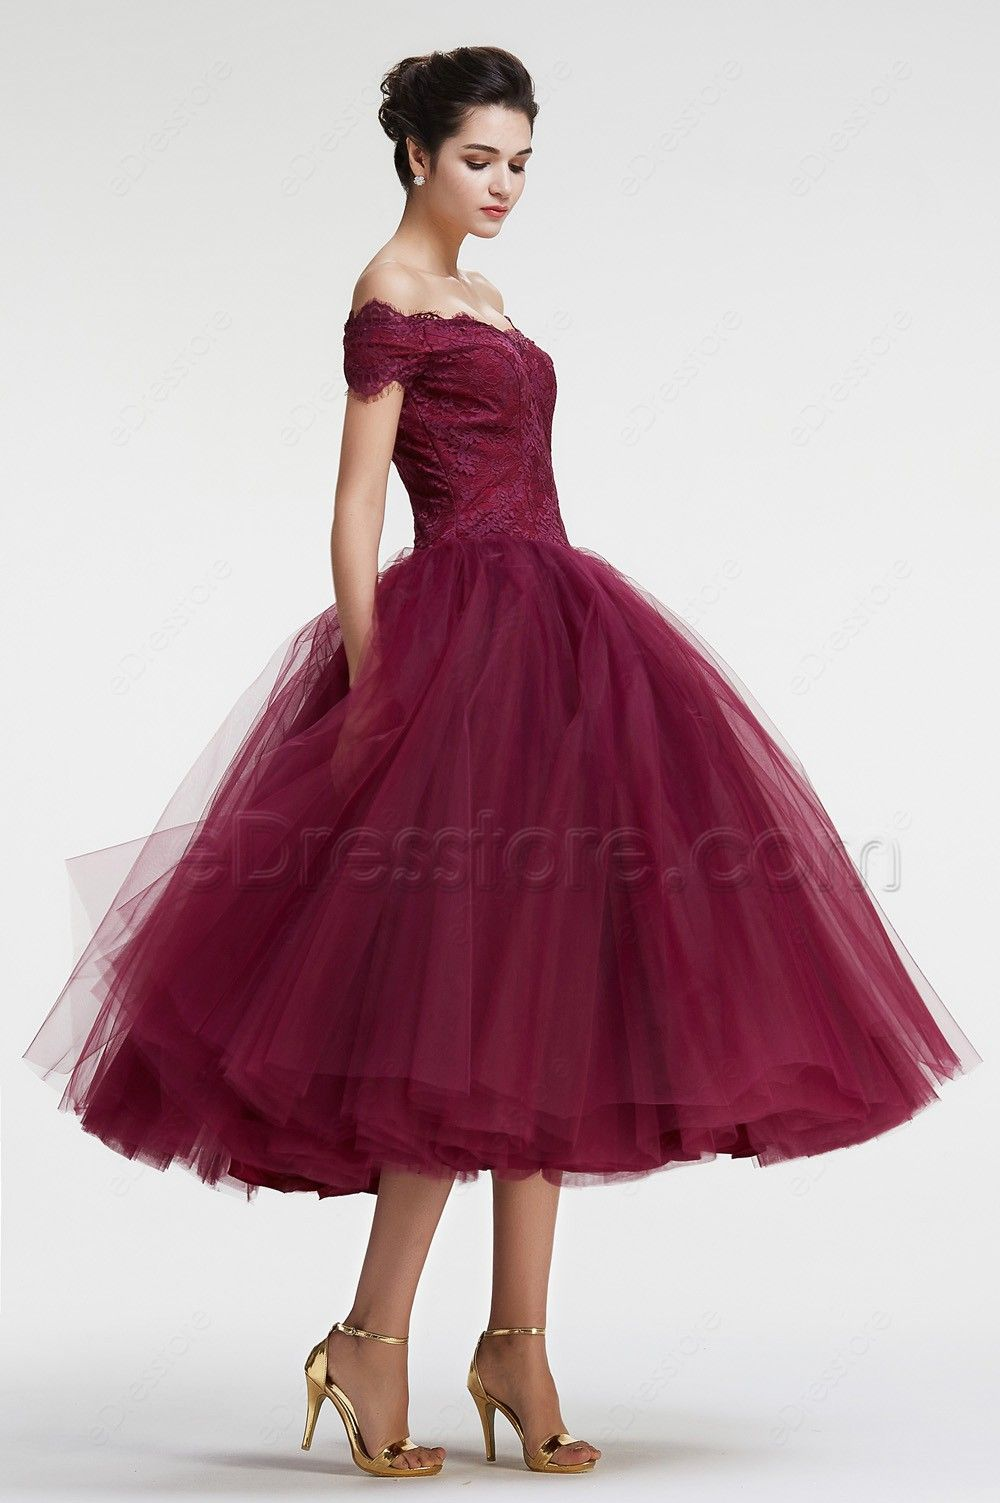 f261d8b4ed5 The burgundy prom dress features off the shoulder neckline with scalloped  lace